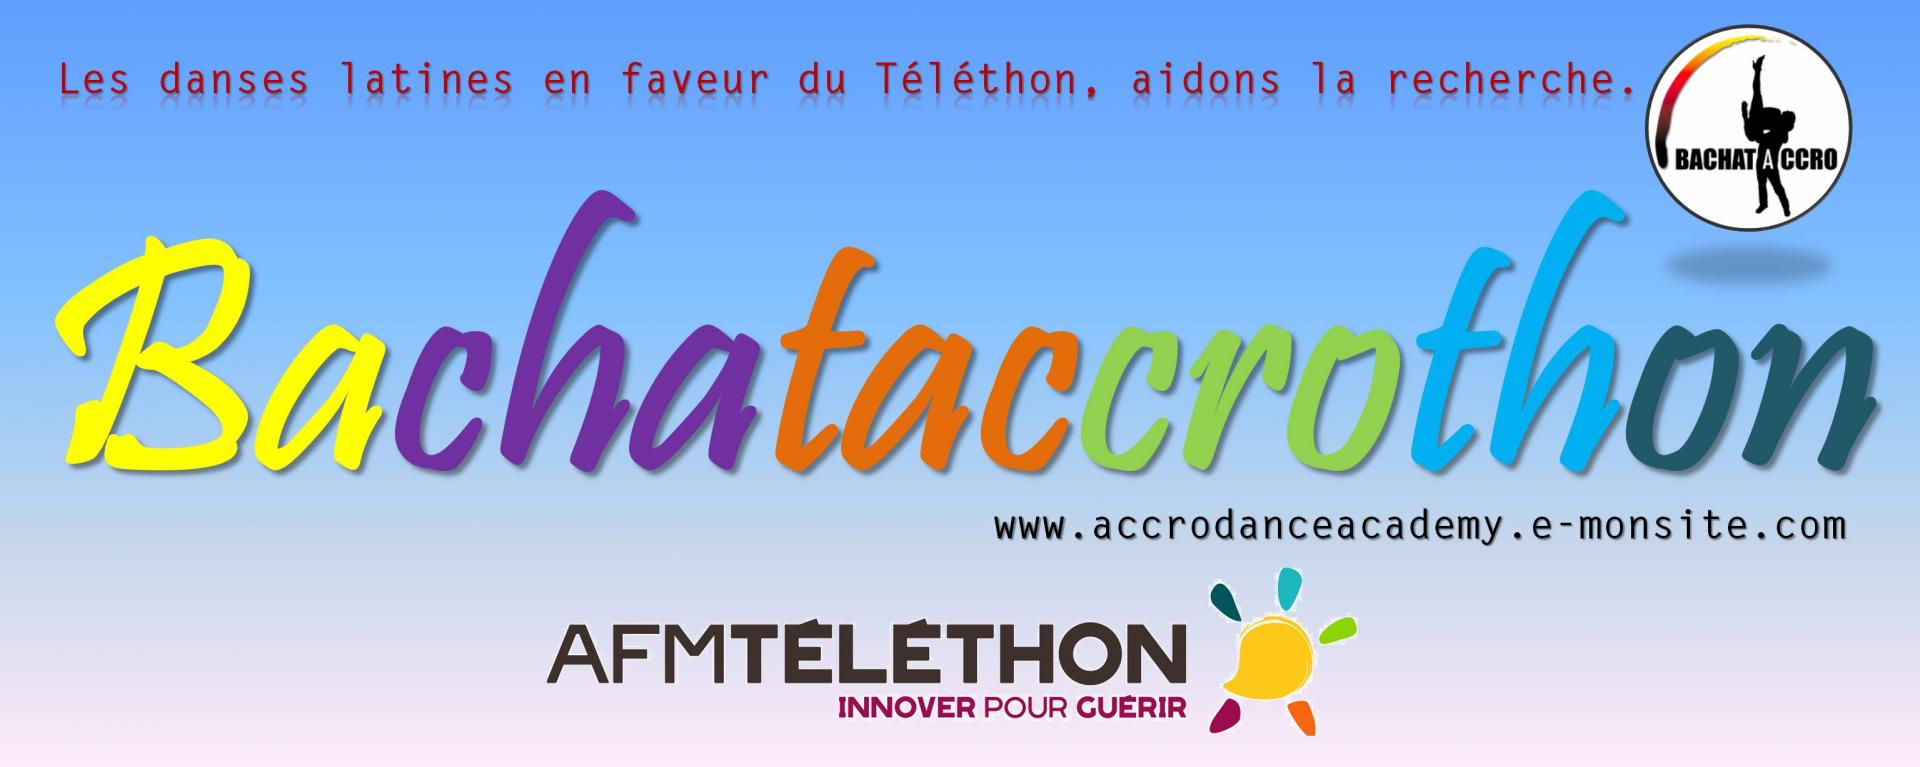 Couverture telethon accrodance